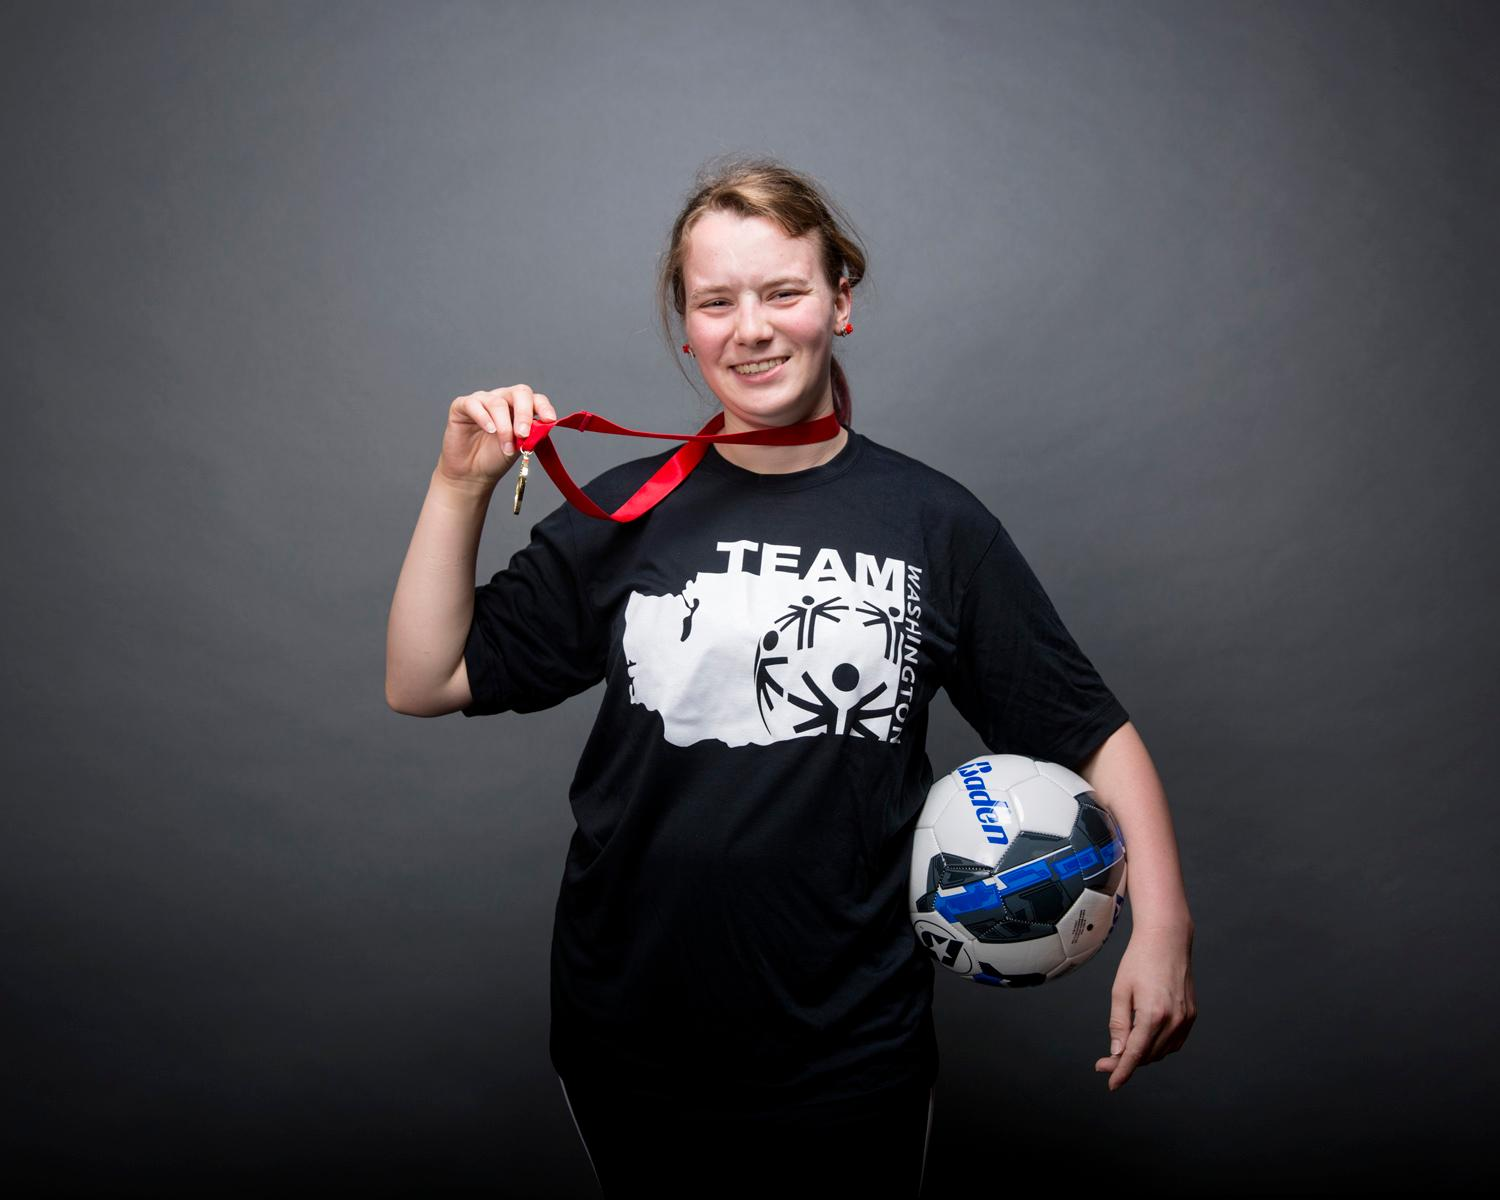 Introducing Laura Gorgen! Laura will be competing in soccer. The Special Olympics USA will take place in Seattle from July 1-6, with a grand opening ceremony and Parade of Athletes and the lighting of the Special Olympics Flame of Hope. (Sy Bean / Seattle Refined)